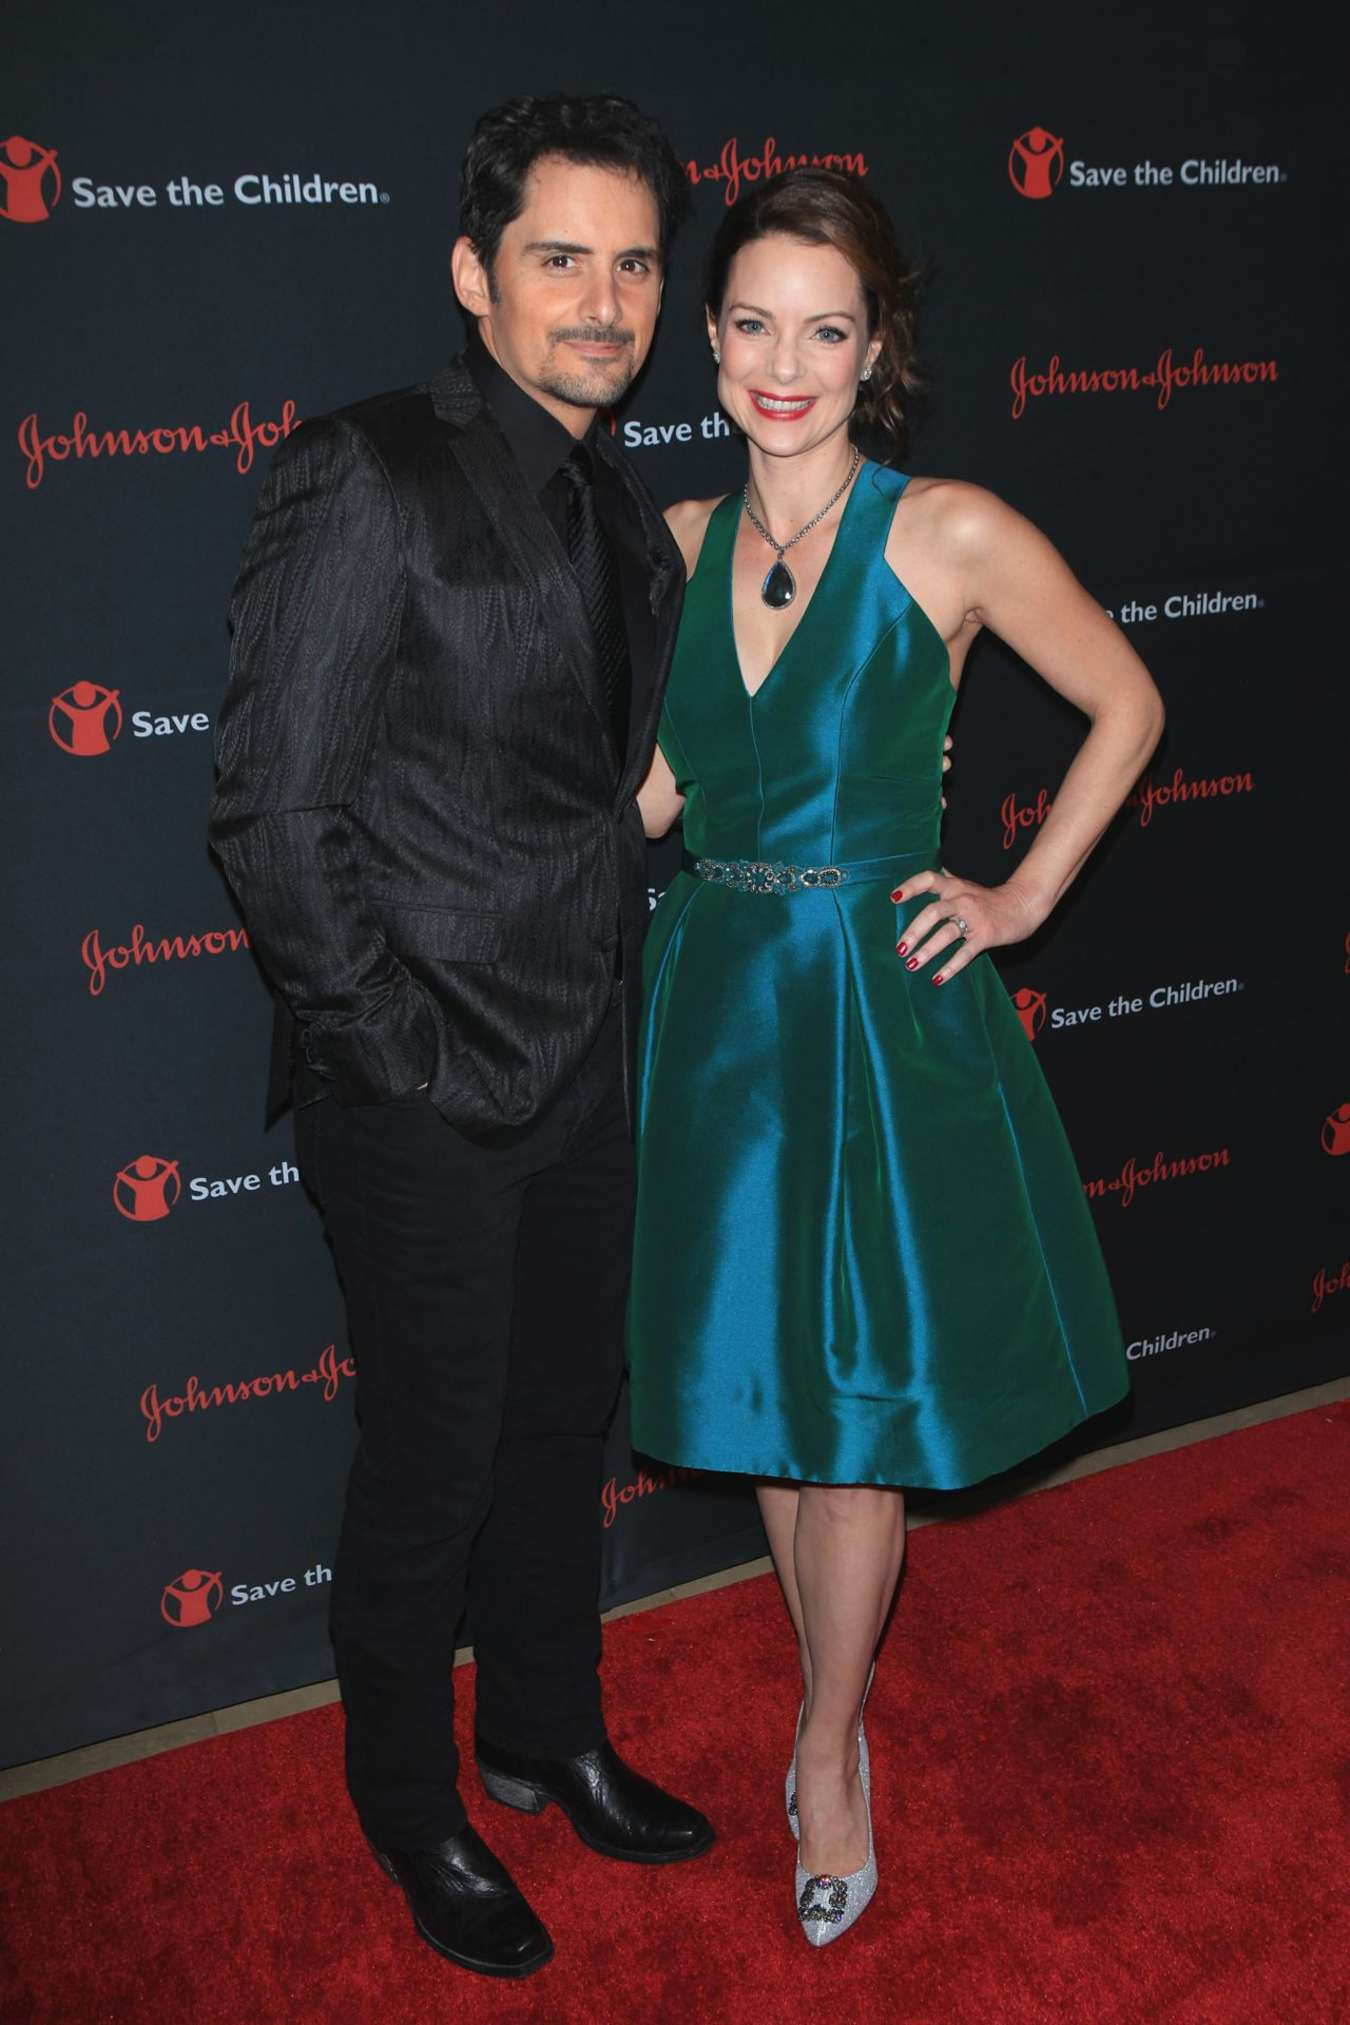 Kimberly Williams-Paisley Save The Children Illumination Gala in New York